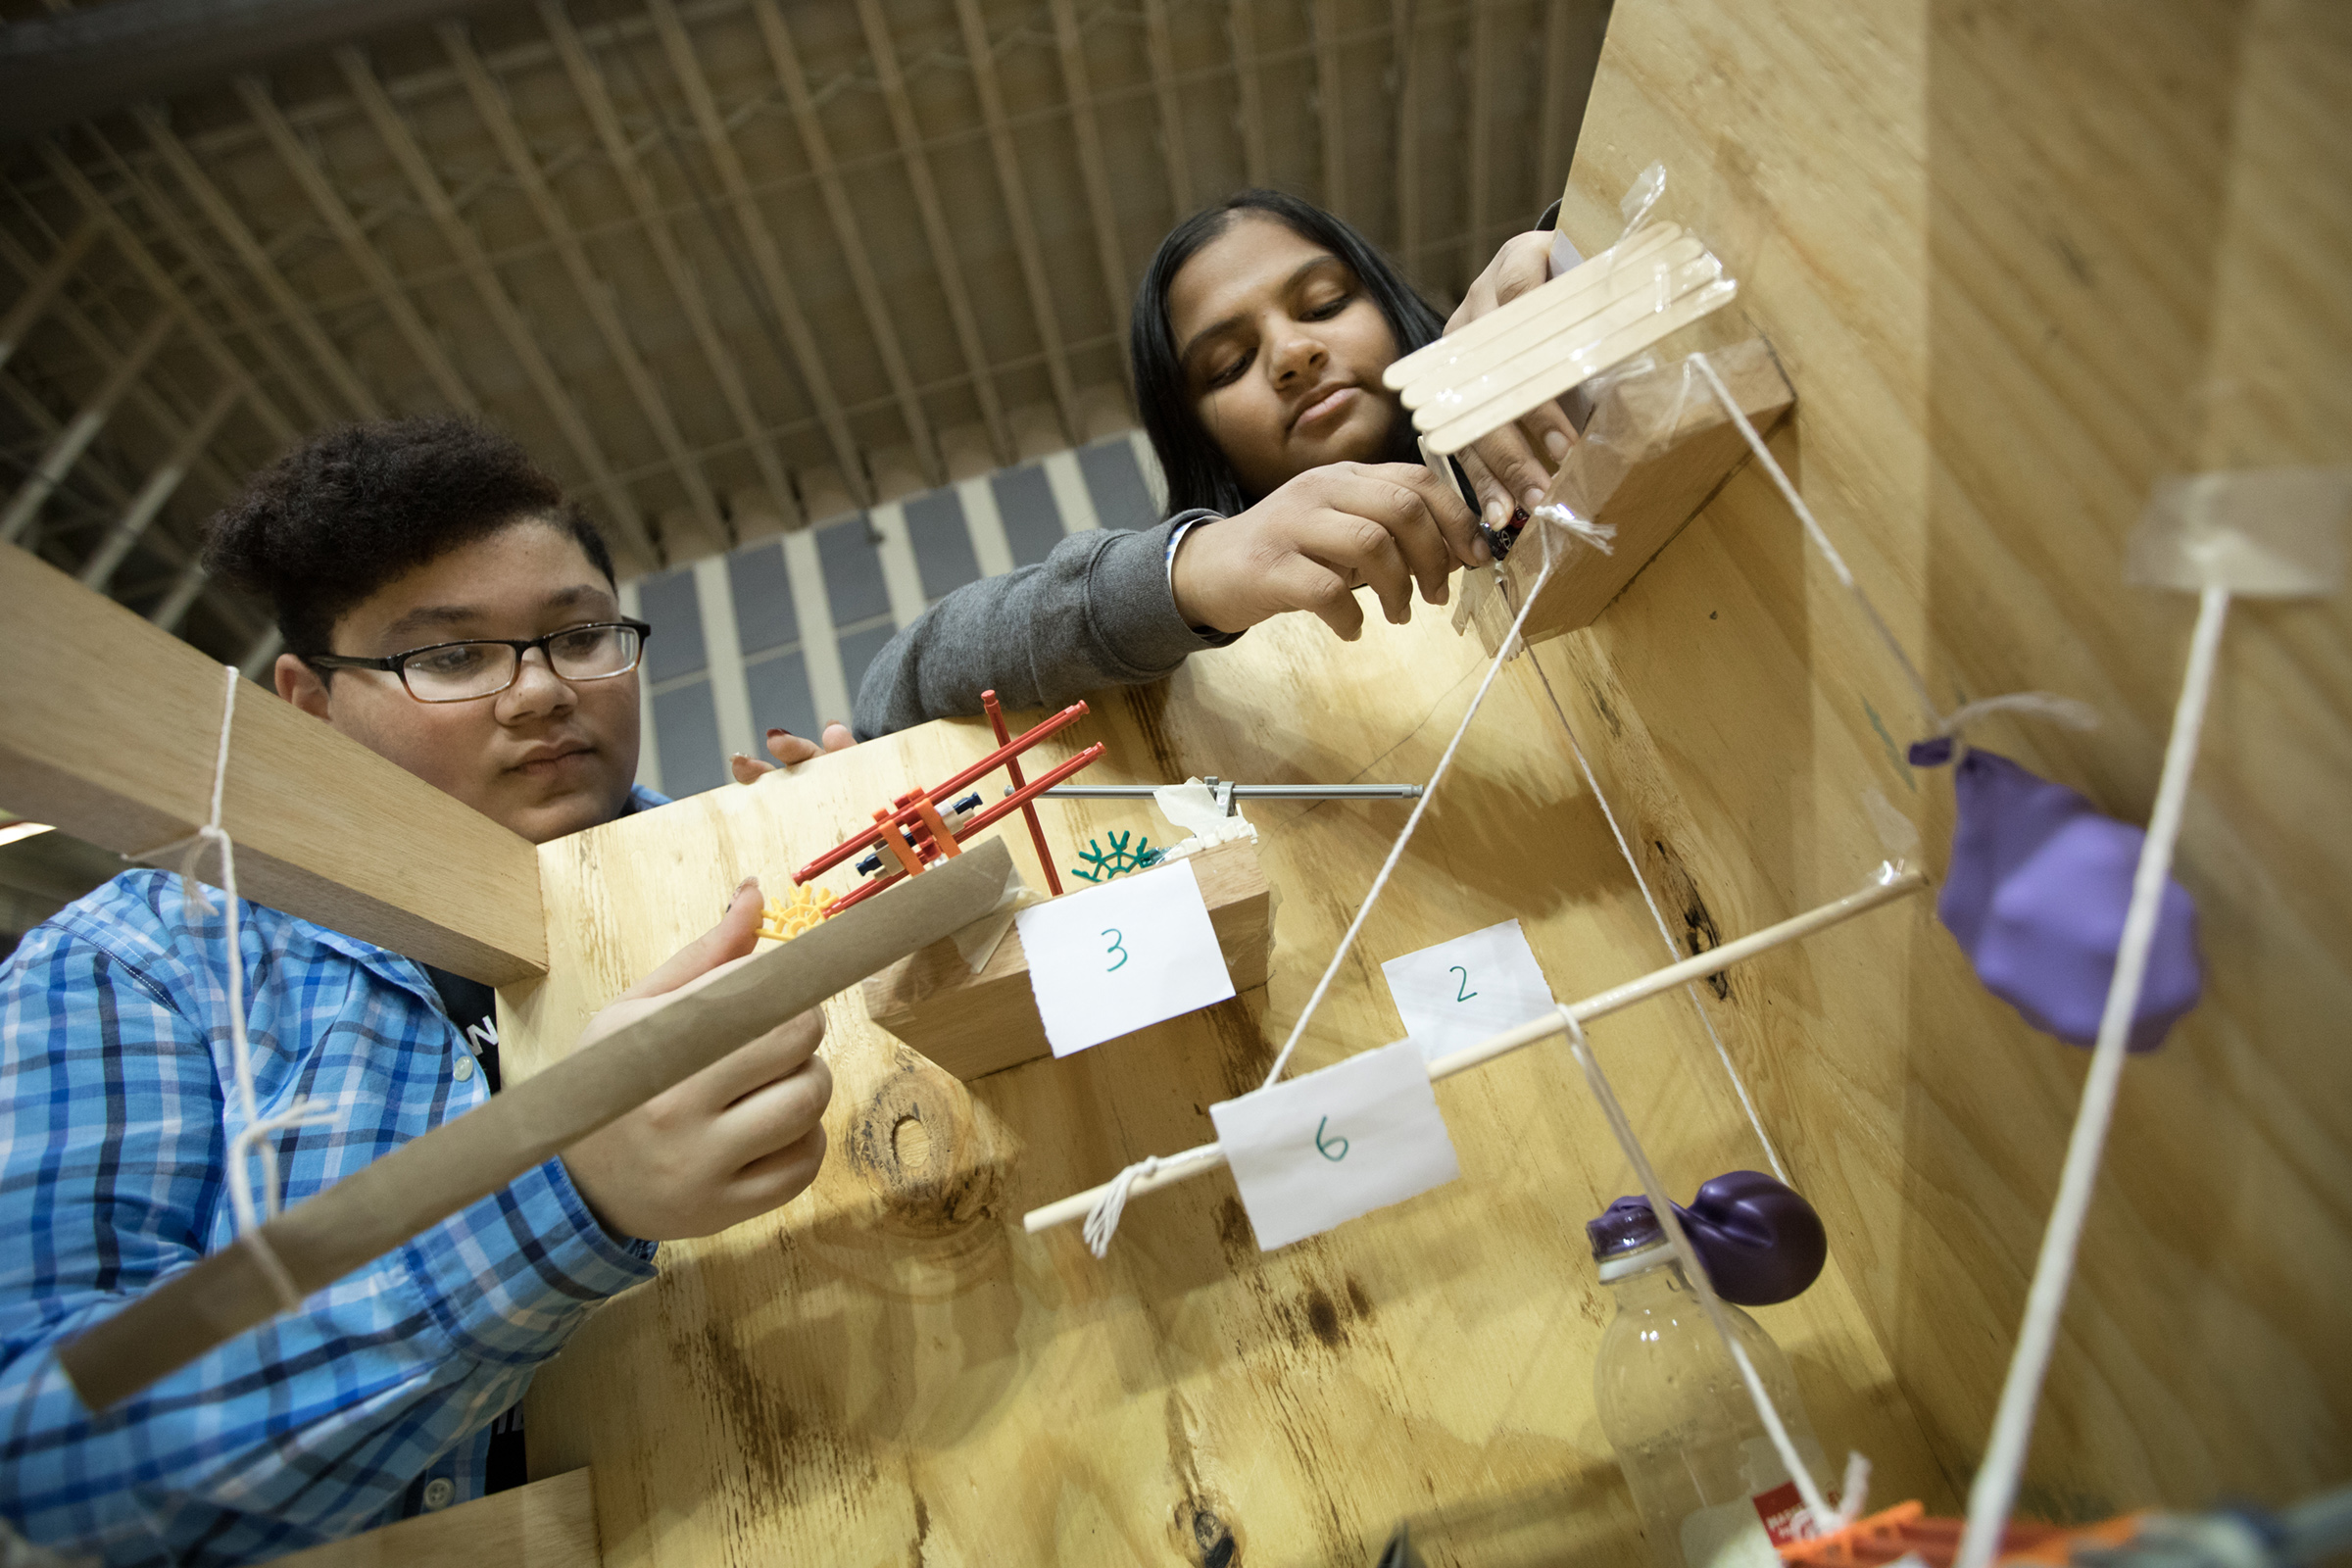 Cal U Welcomes Students to Science Olympiad Regional Competition